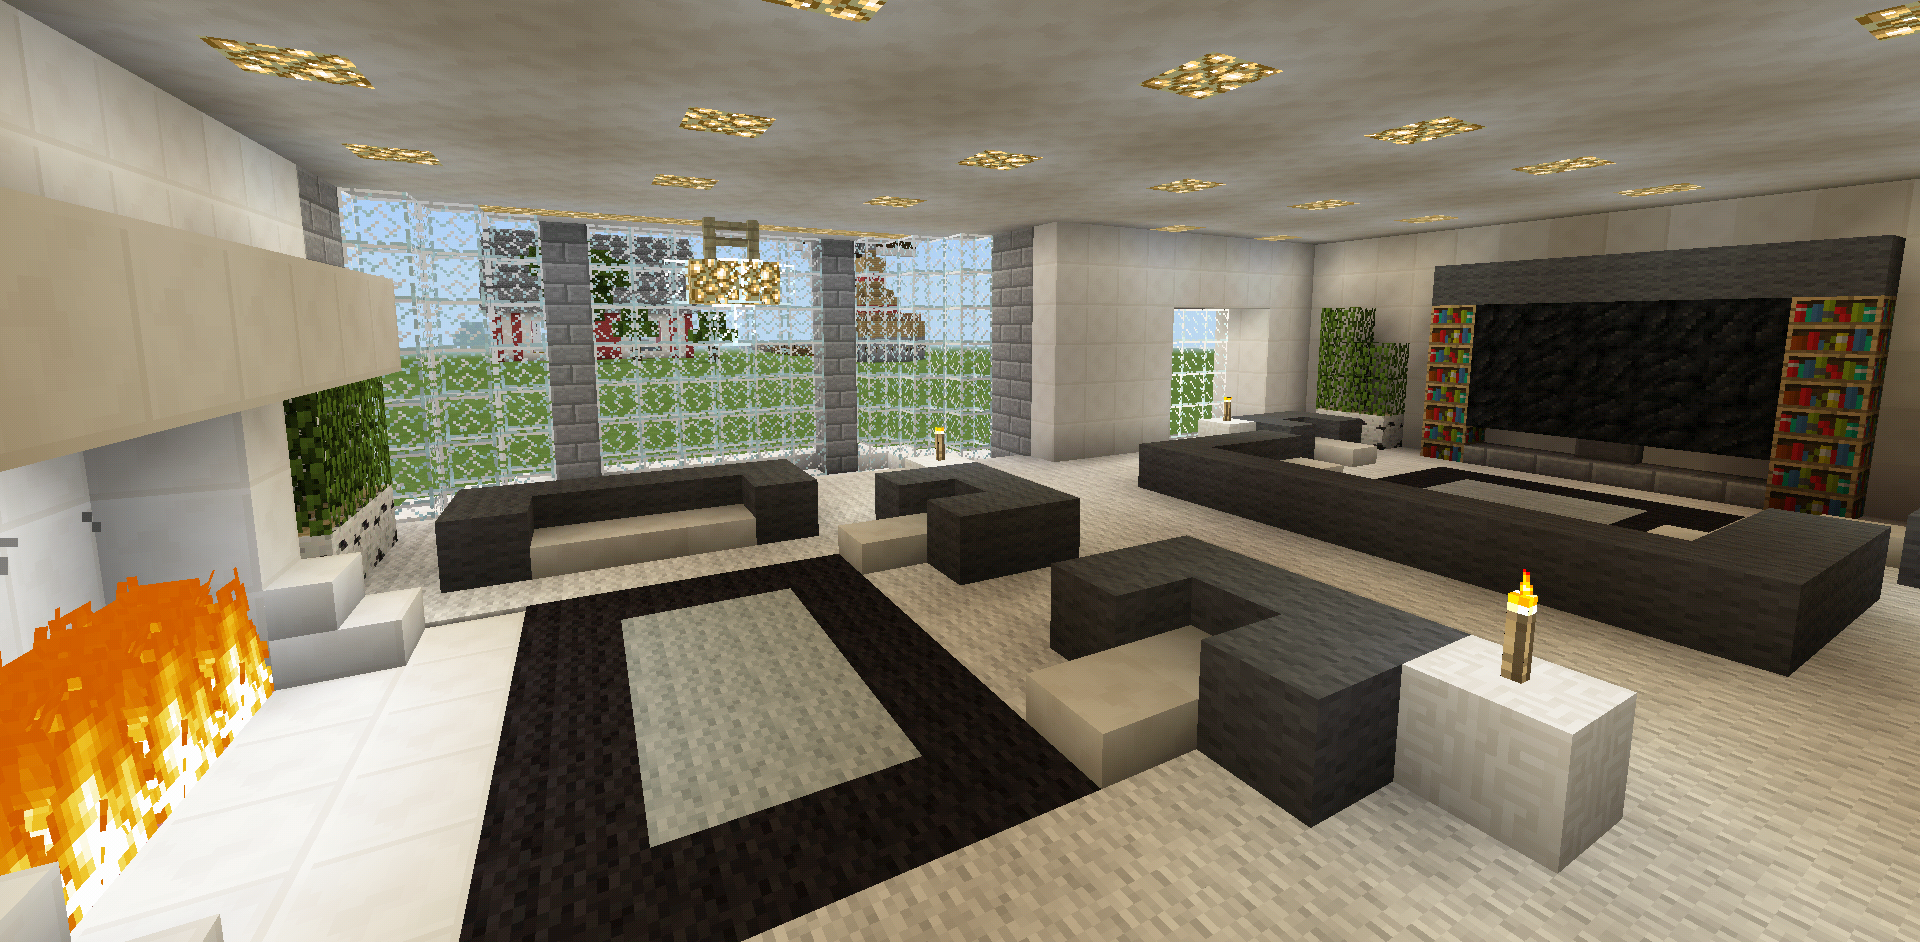 Modern Living Room Minecraft minecraft family living room and fireplace couch chair tv